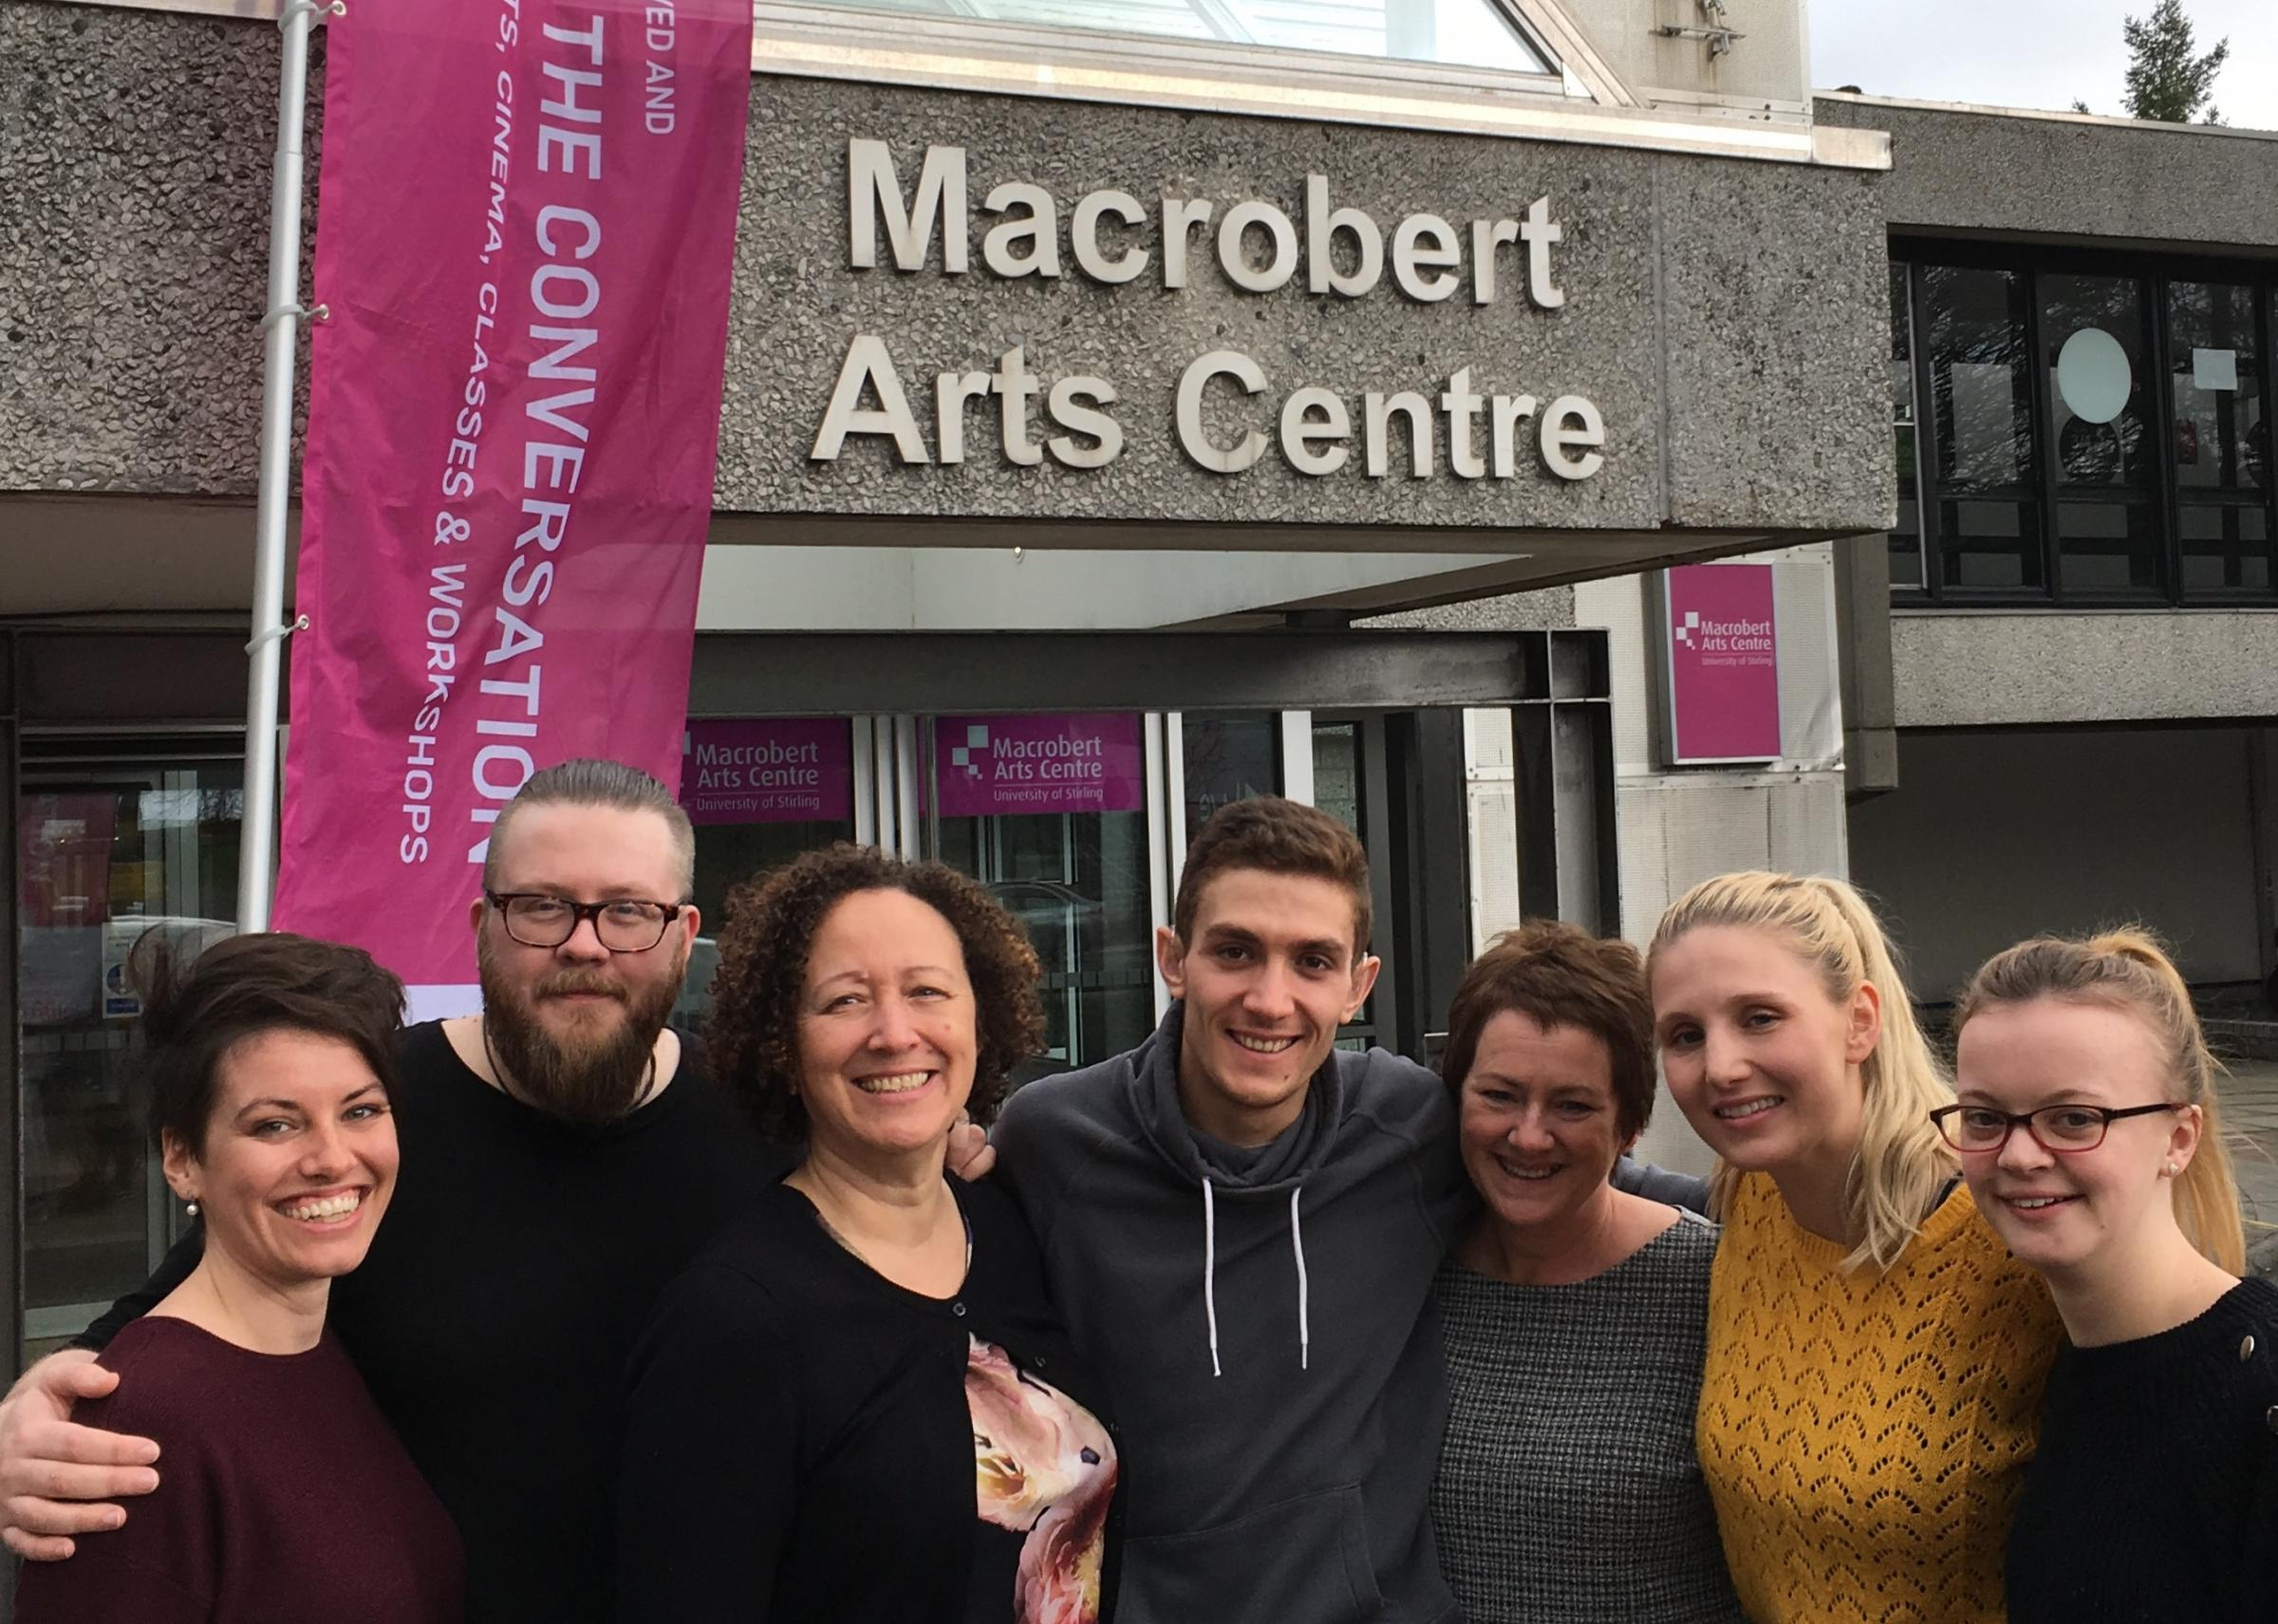 Staff at the Macrobert Arts Centre in Stirling